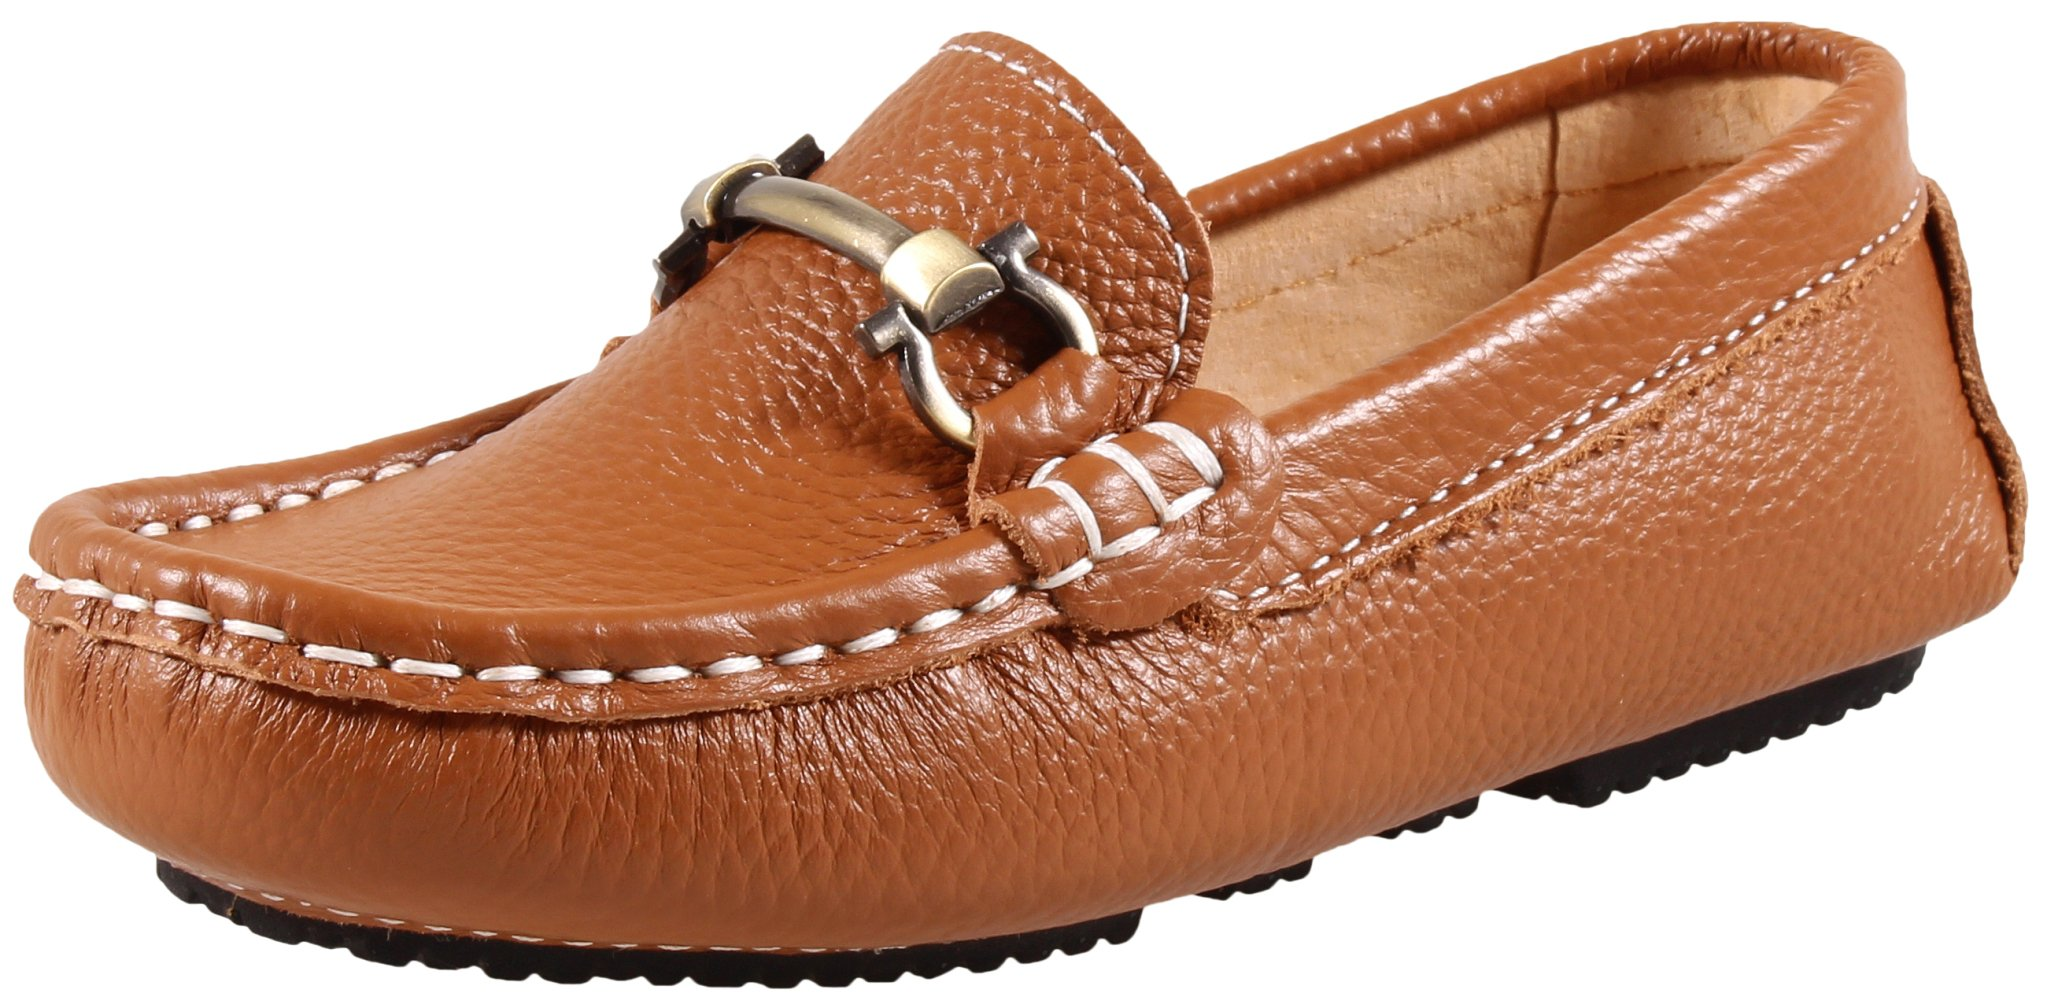 SKOEX Boy's Leather Loafers Slip On Boat Shoes US Size 8.5 Brown